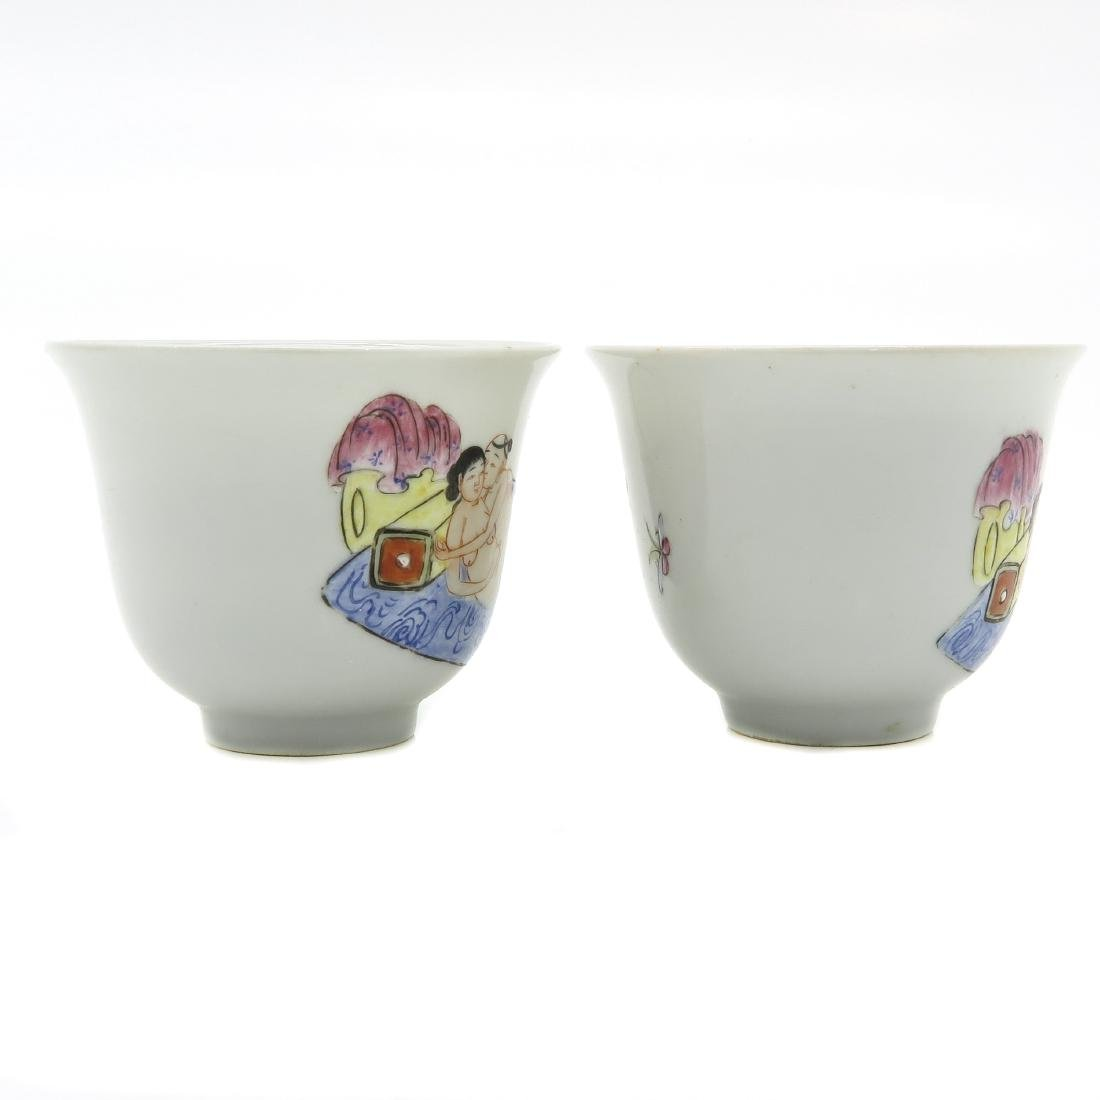 Lot of 2 Erotic Decor Cups - 4